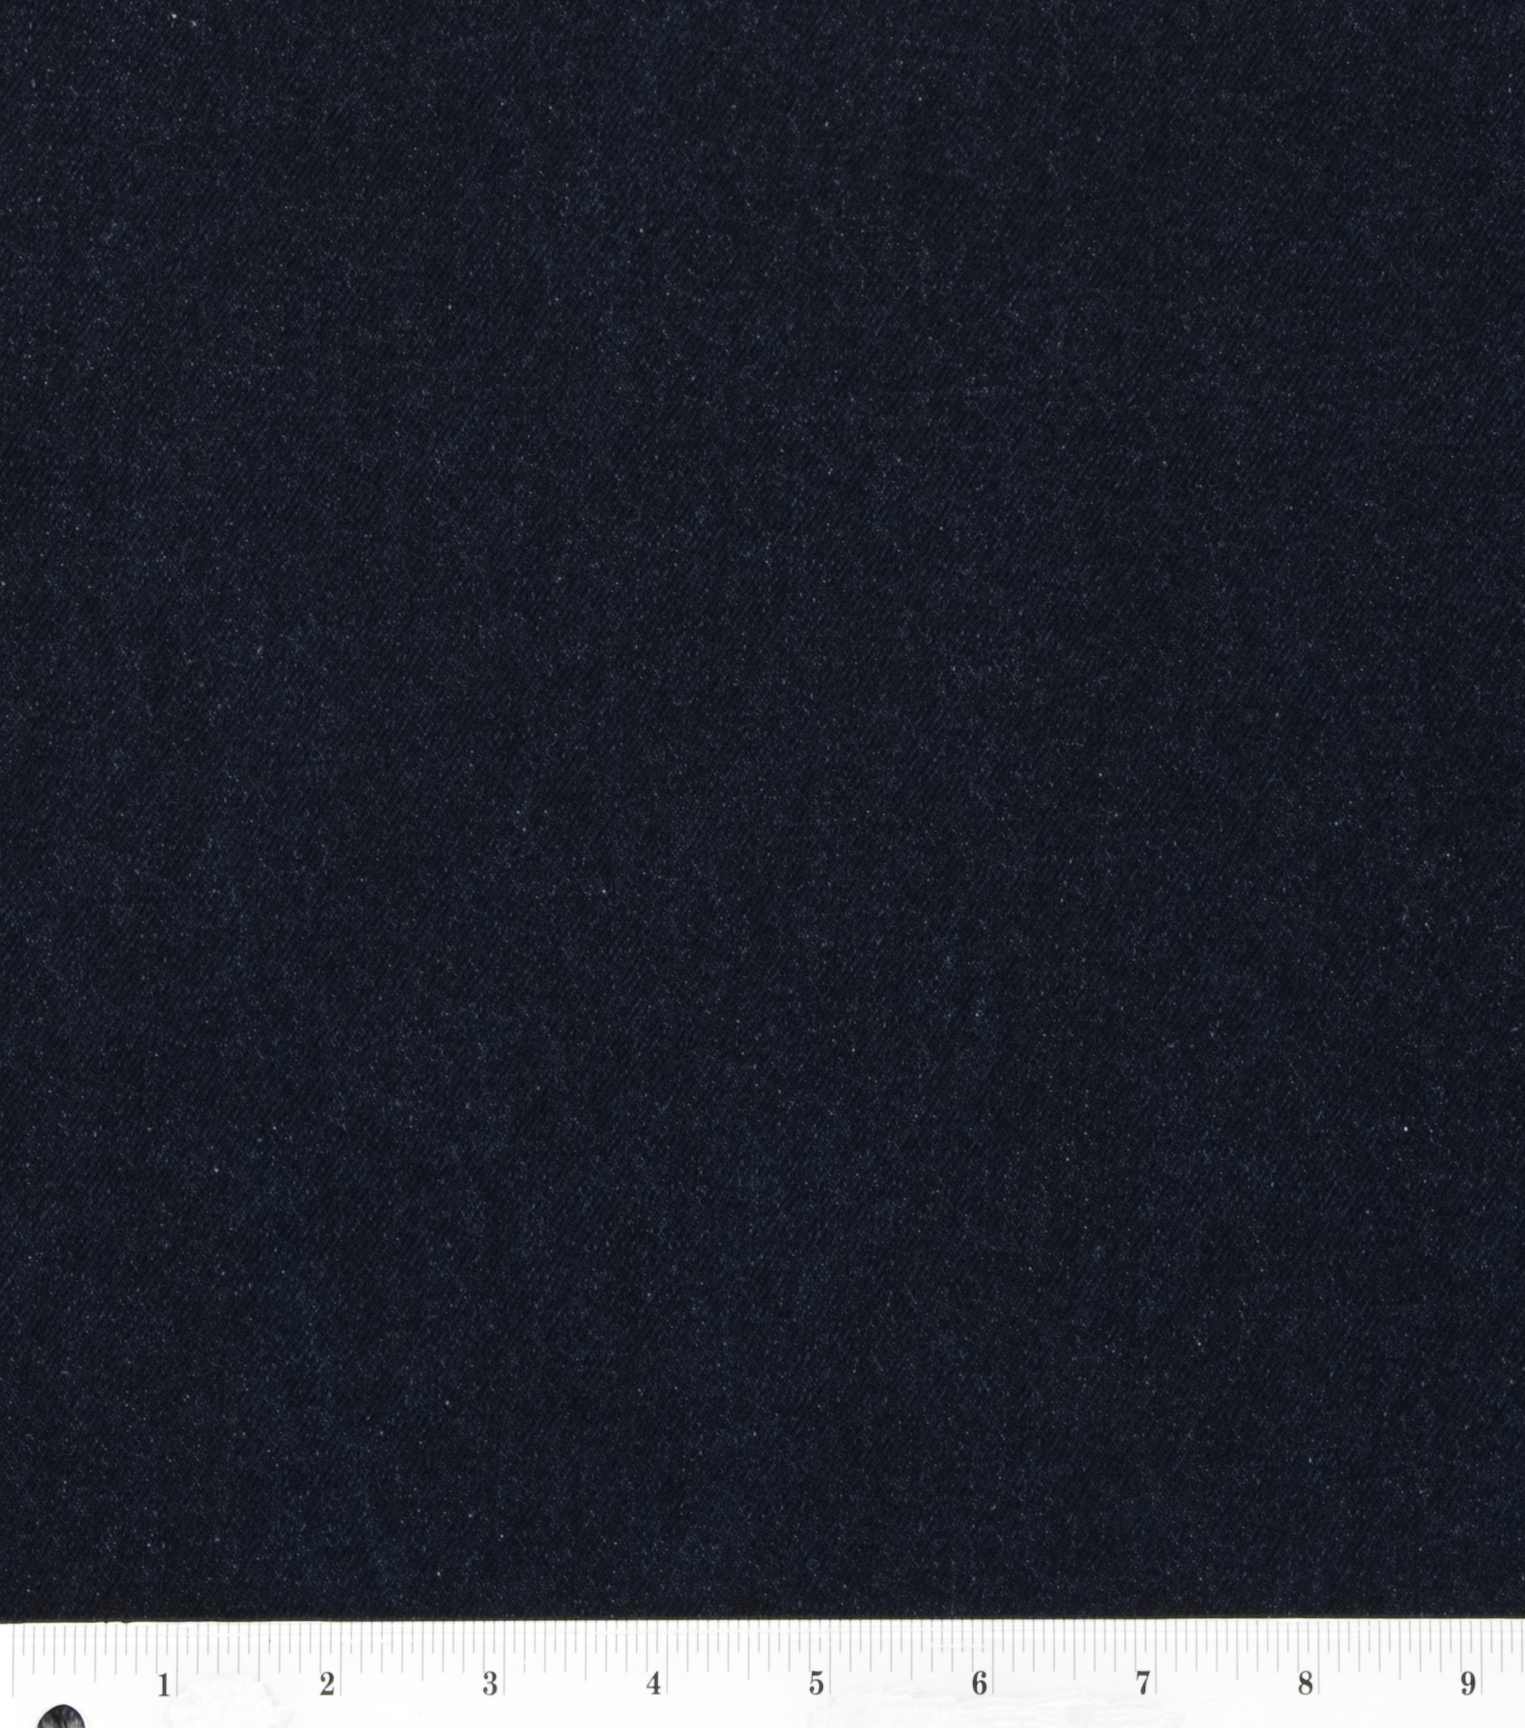 Sew Classics Bottom Weight Stretch Denim Fabric 57\u0022-Dark Wash